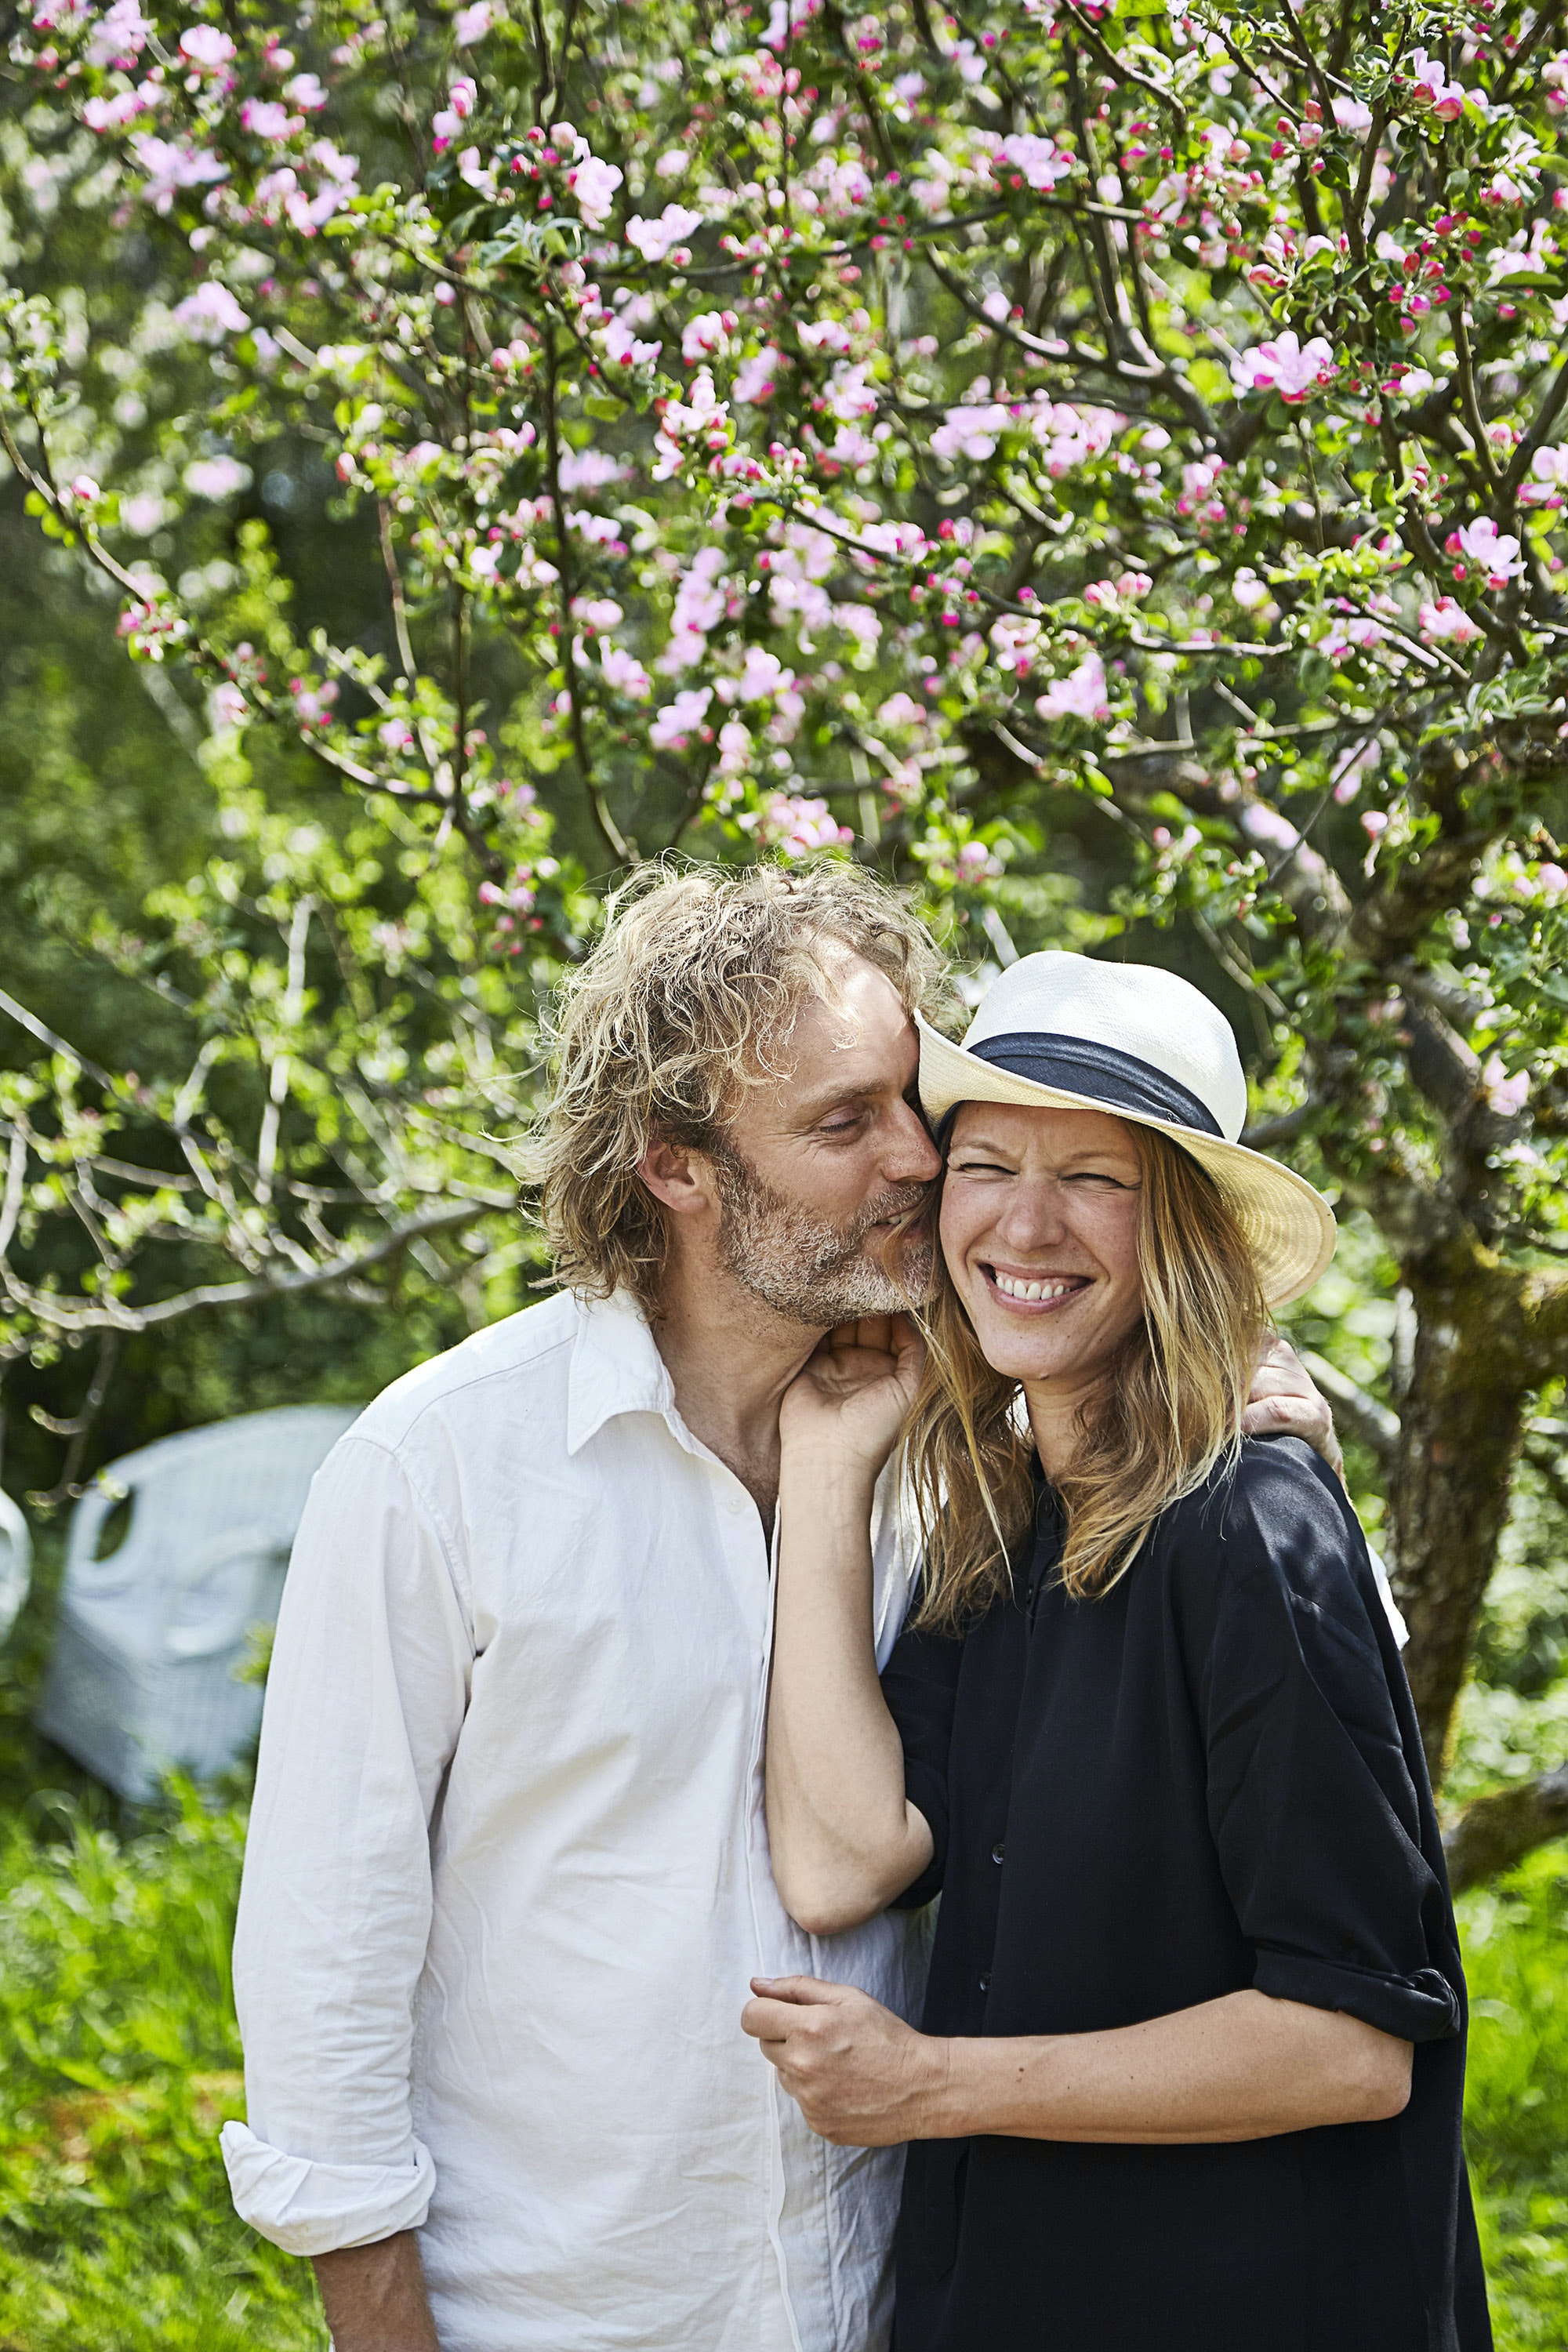 Flemming Hansen and Mette Helbæk serve food raised on their permaculture farm to guests.